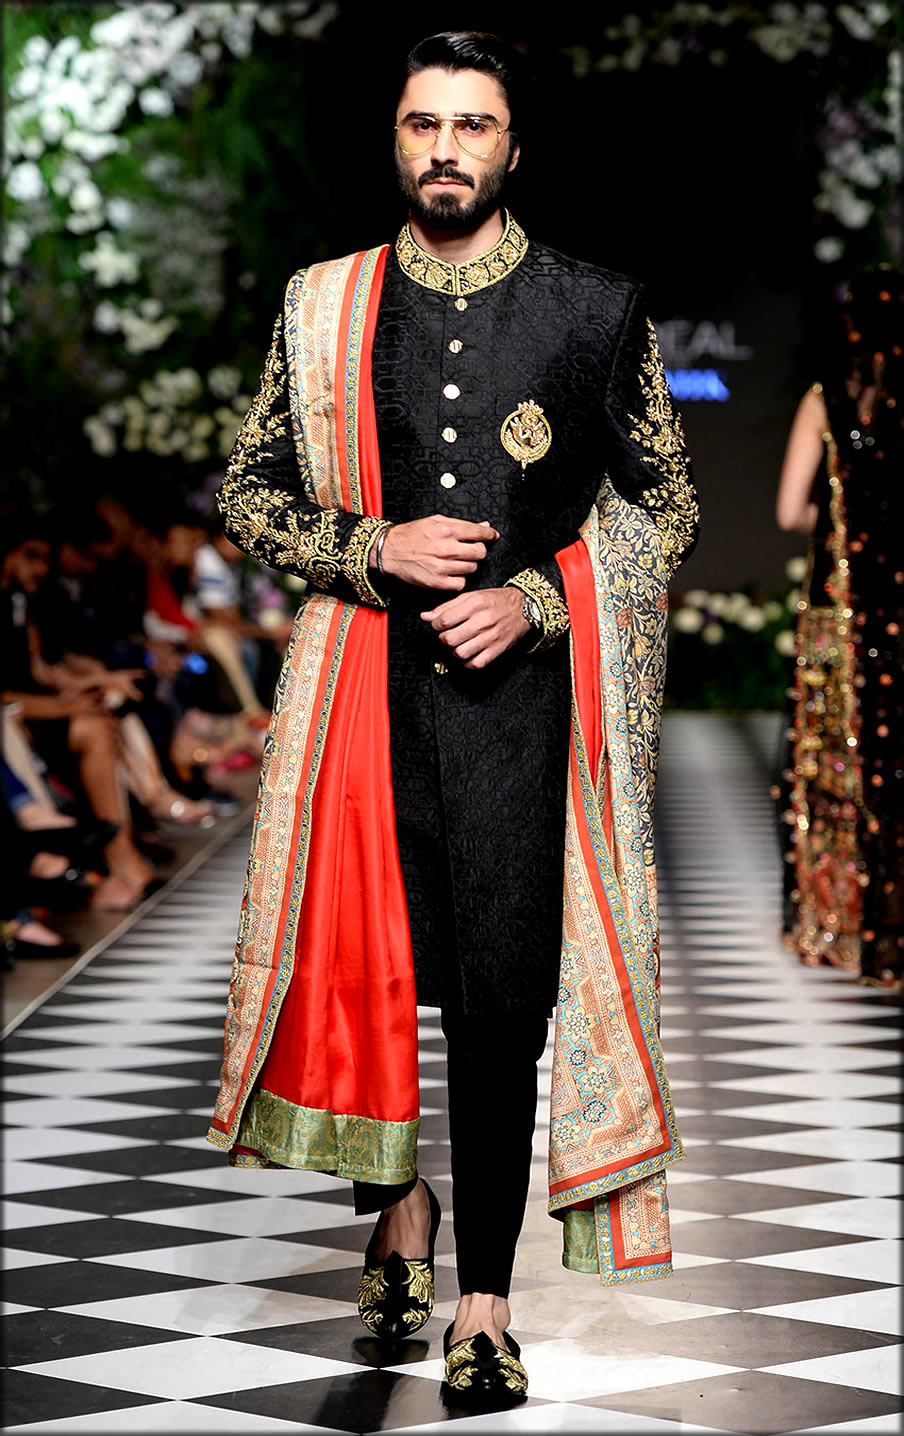 Black Pakistani Wedding dresses For Men